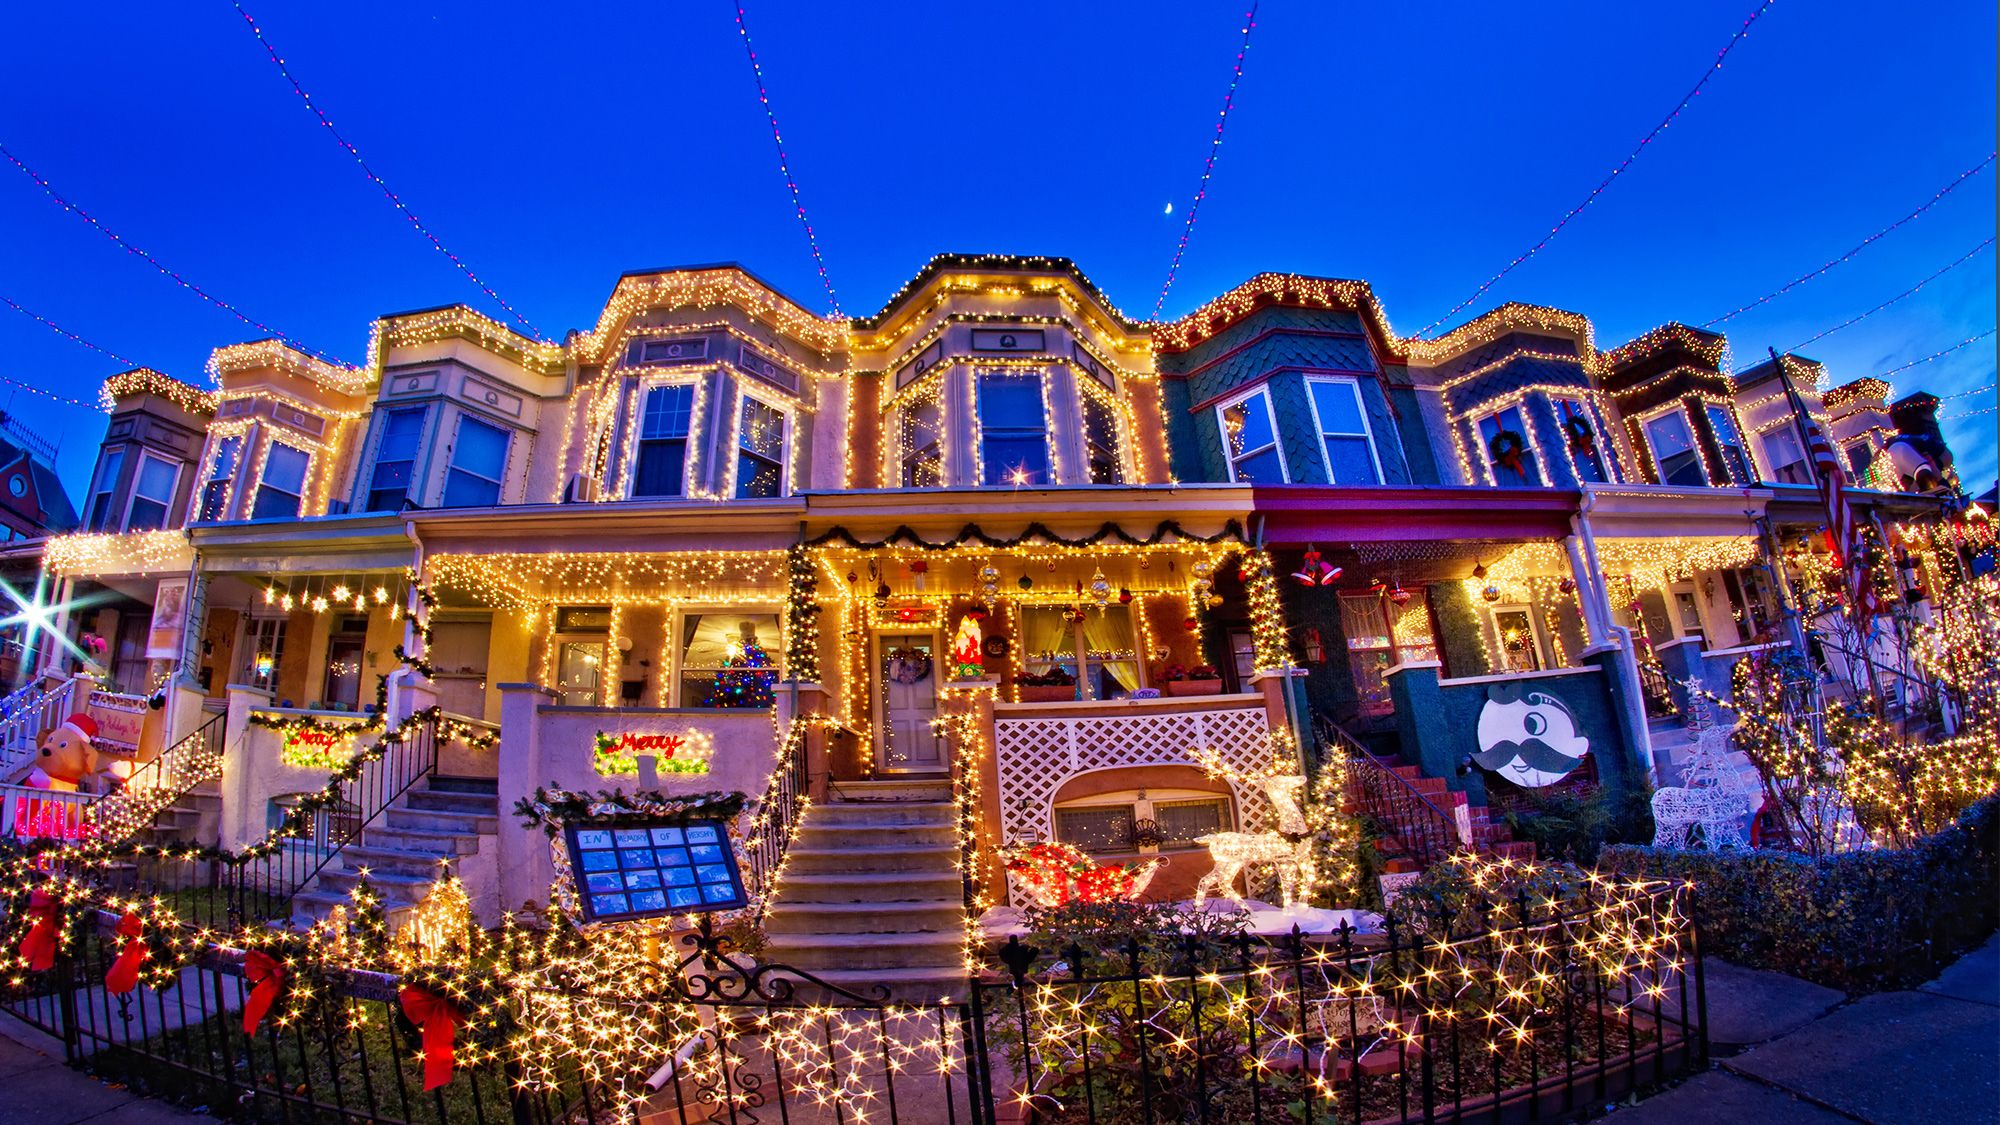 6 Neighborhoods With The Wildest Holiday Decorations Best Christmas Light Displays Best Christmas Lights Christmas Light Displays